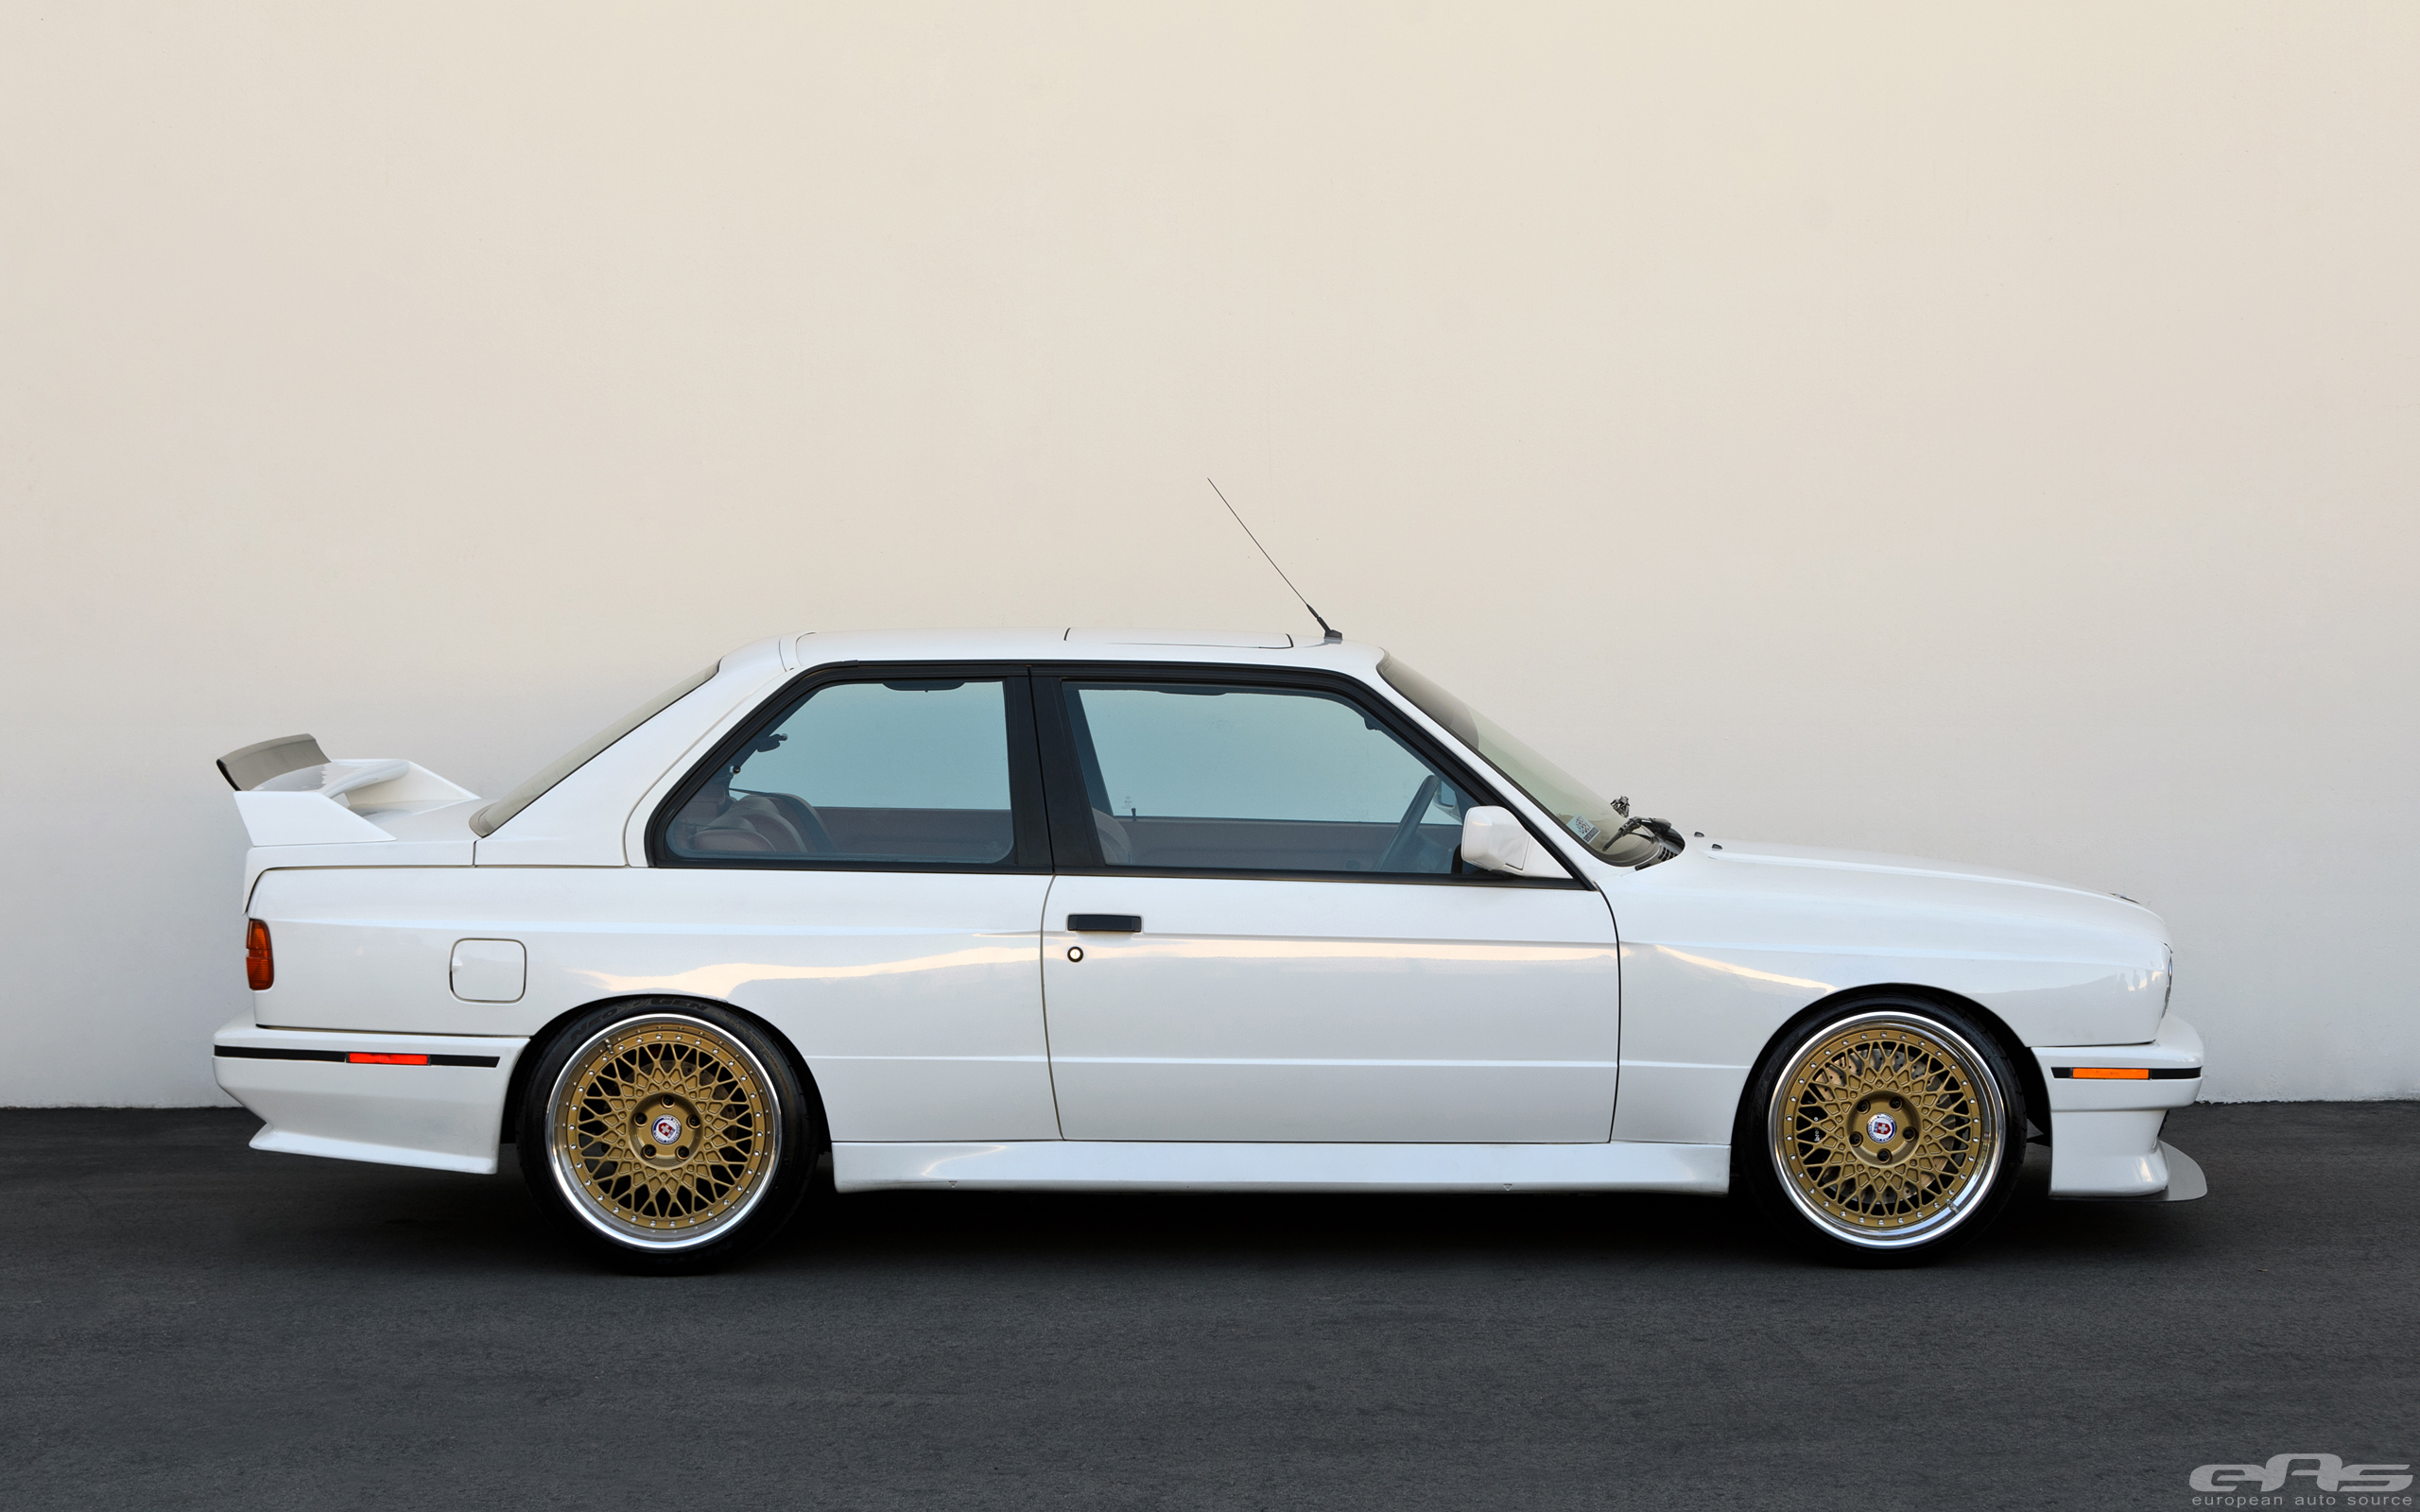 Elon Musk Car In Spac Wallpaper Jaw Dropping E30 M3 Will Turn You Into An Old School Bmw